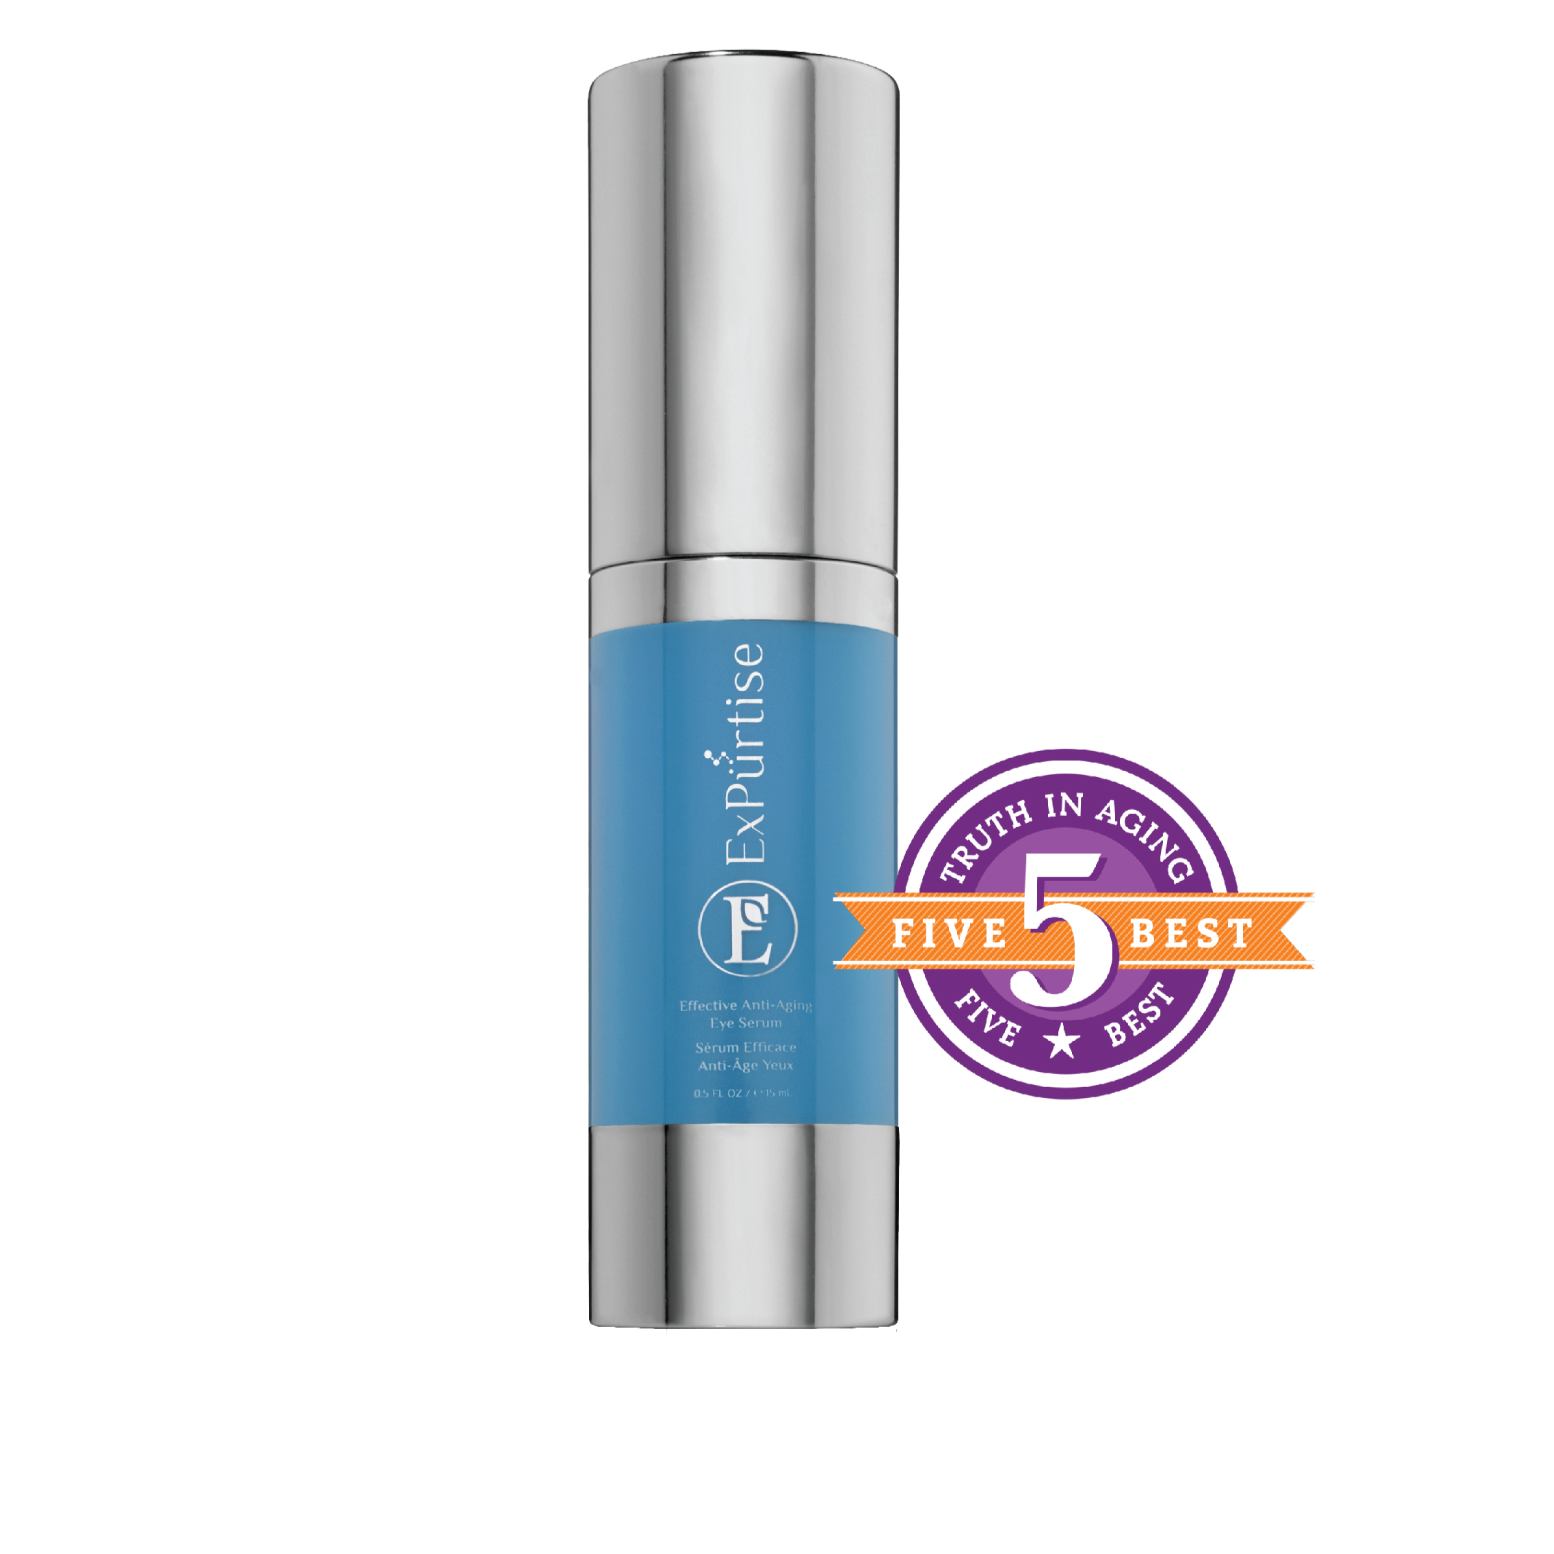 Expurtise Eye Serum